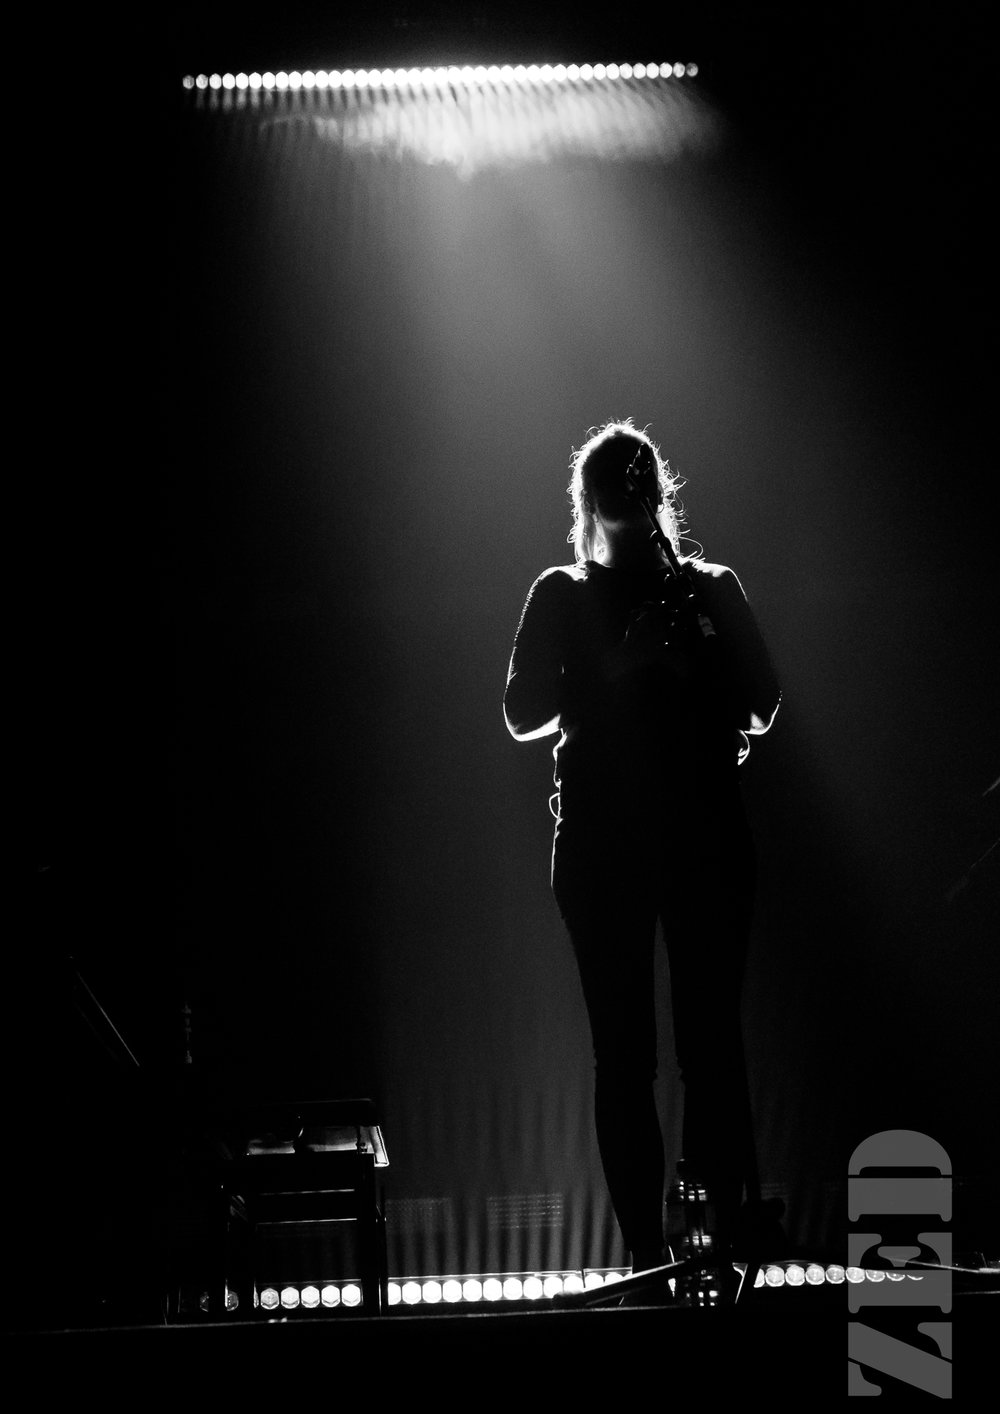 30Sep17, London Grammar, Spark Arena 1.jpg